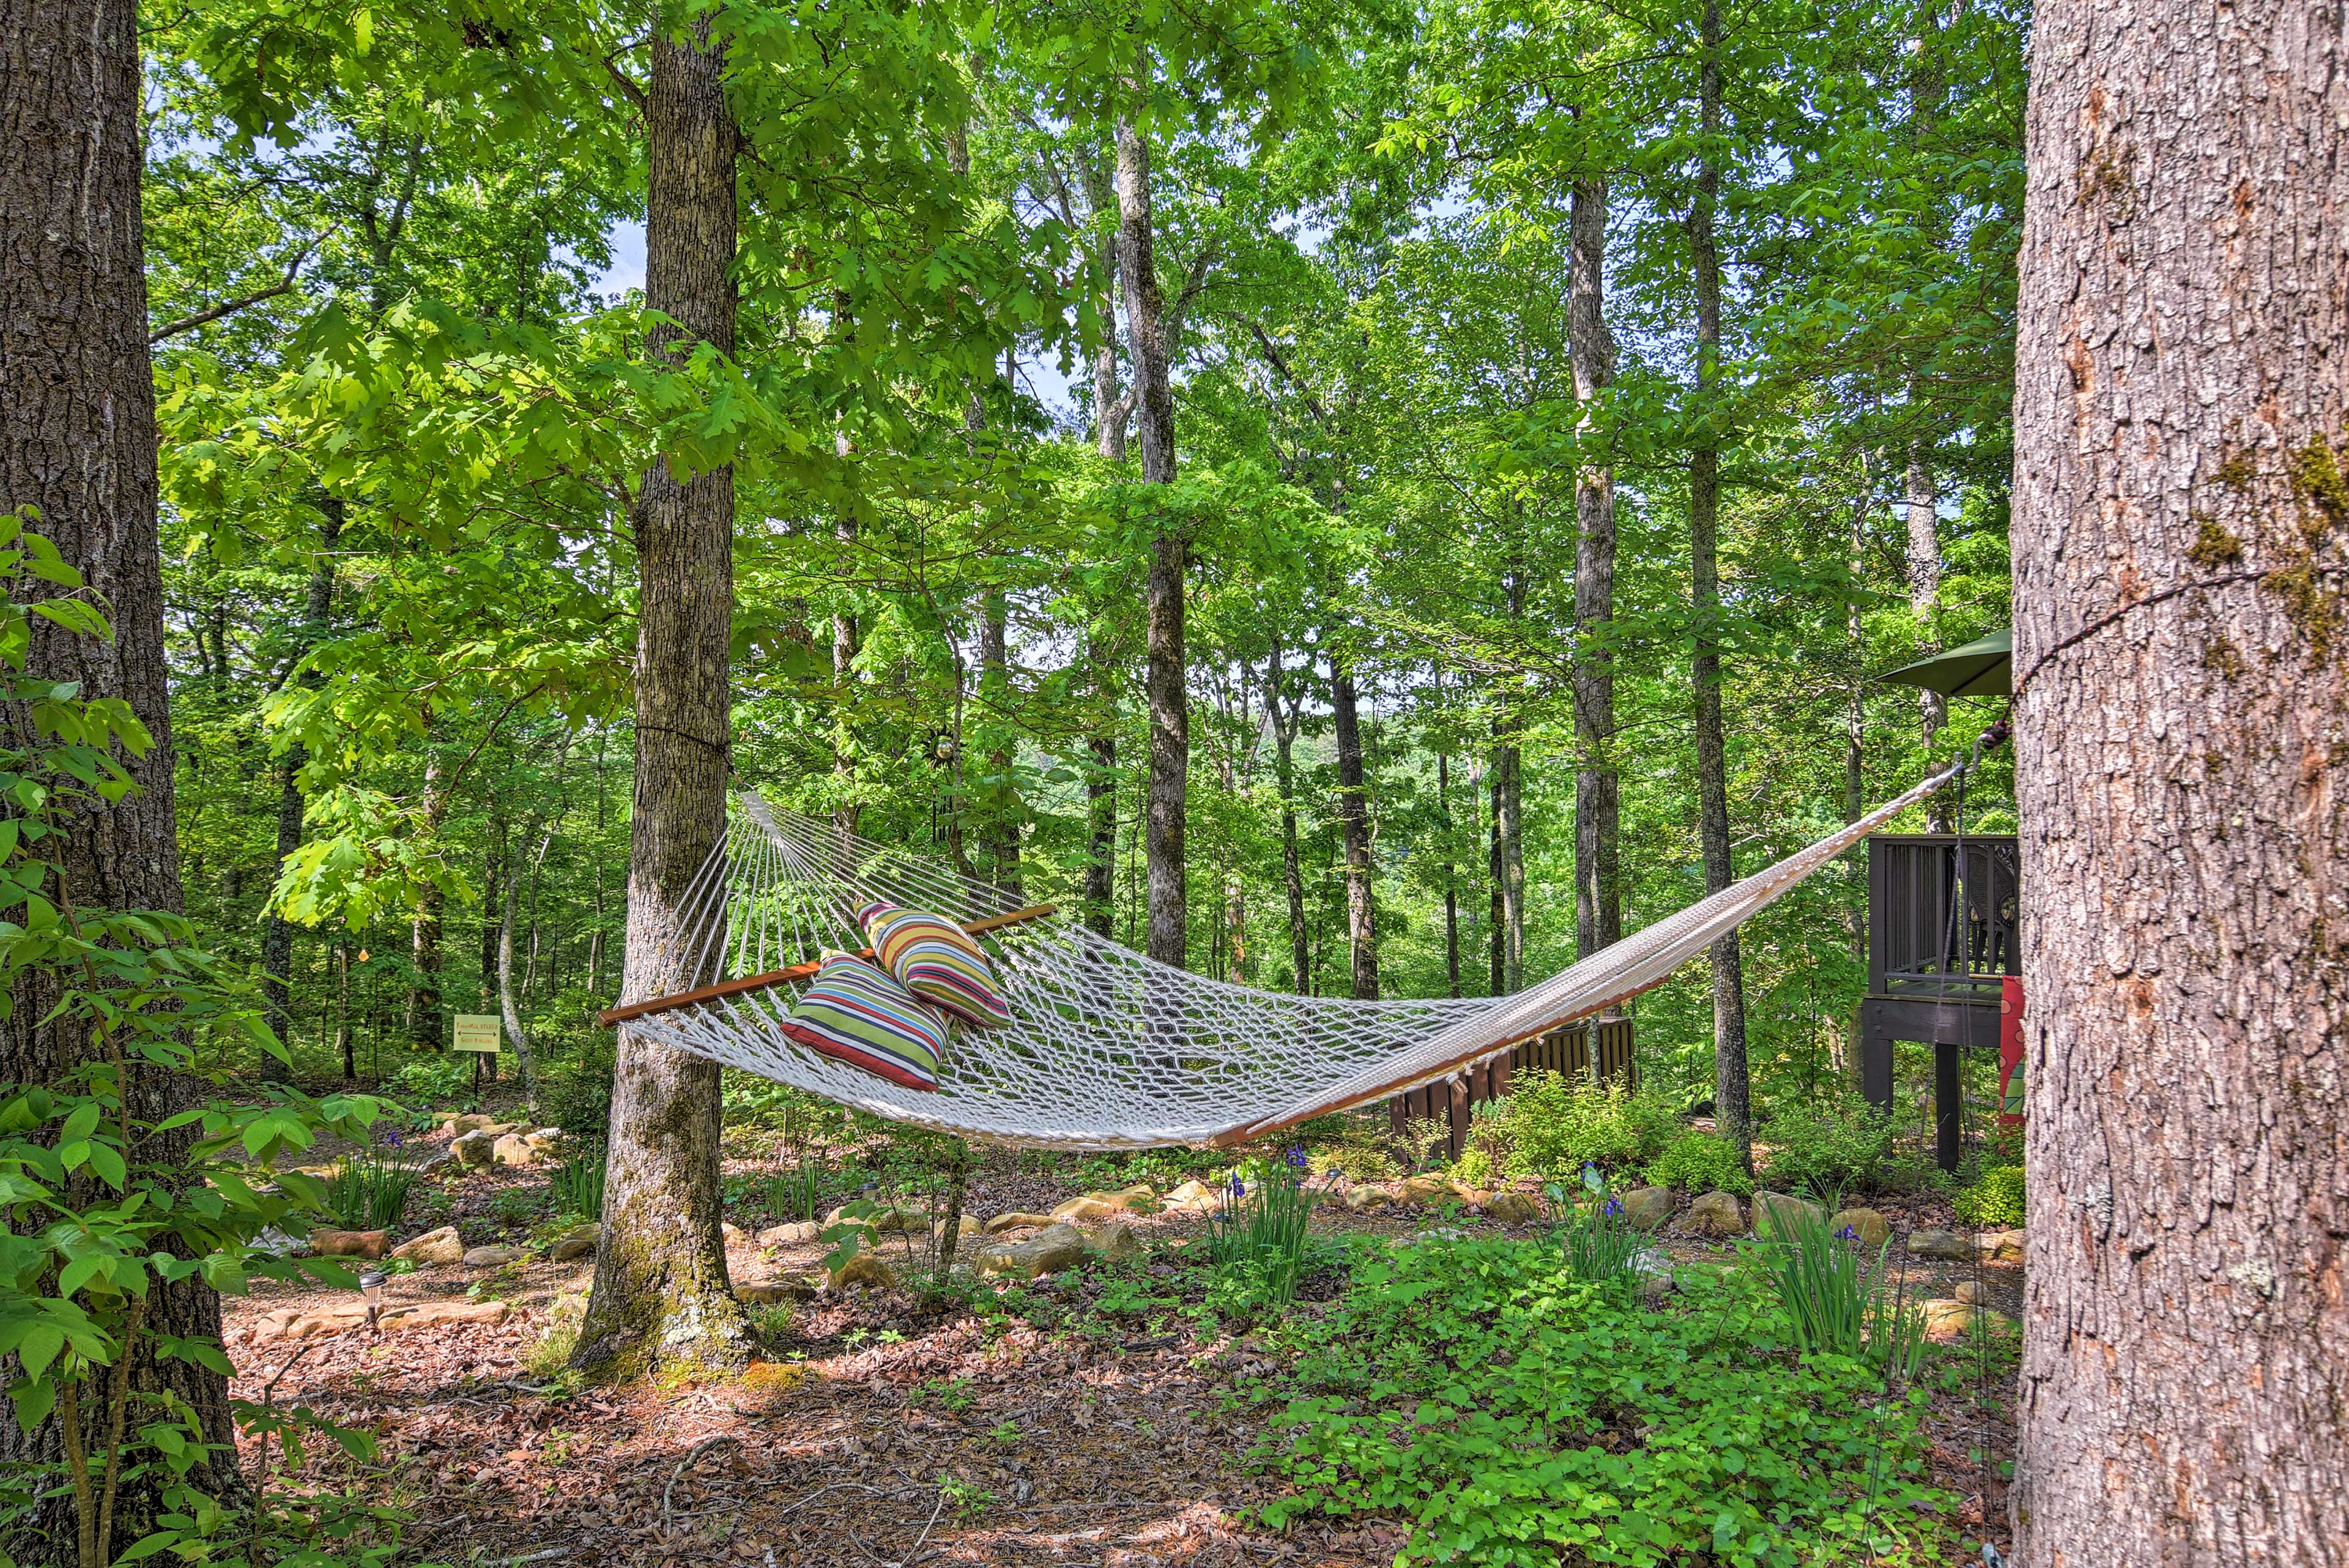 Relax on the comfortable hammock and drift off into dreamland.